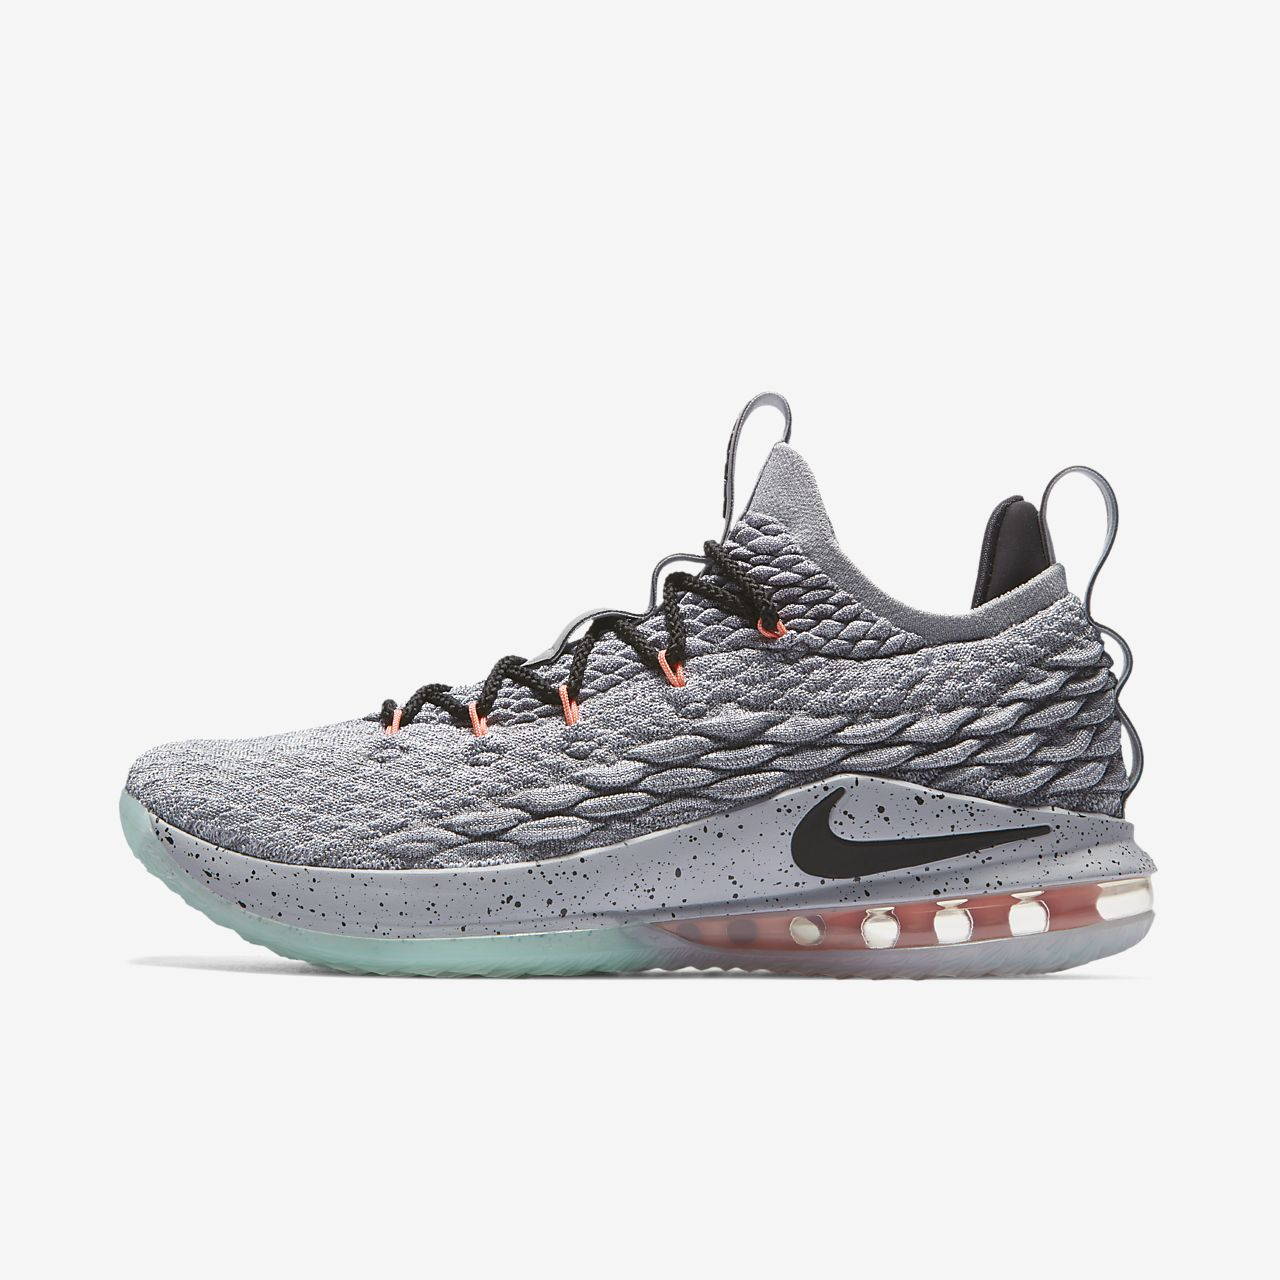 wholesale dealer 6ac6c aae9a ... LeBron 15 Low Basketball Shoe